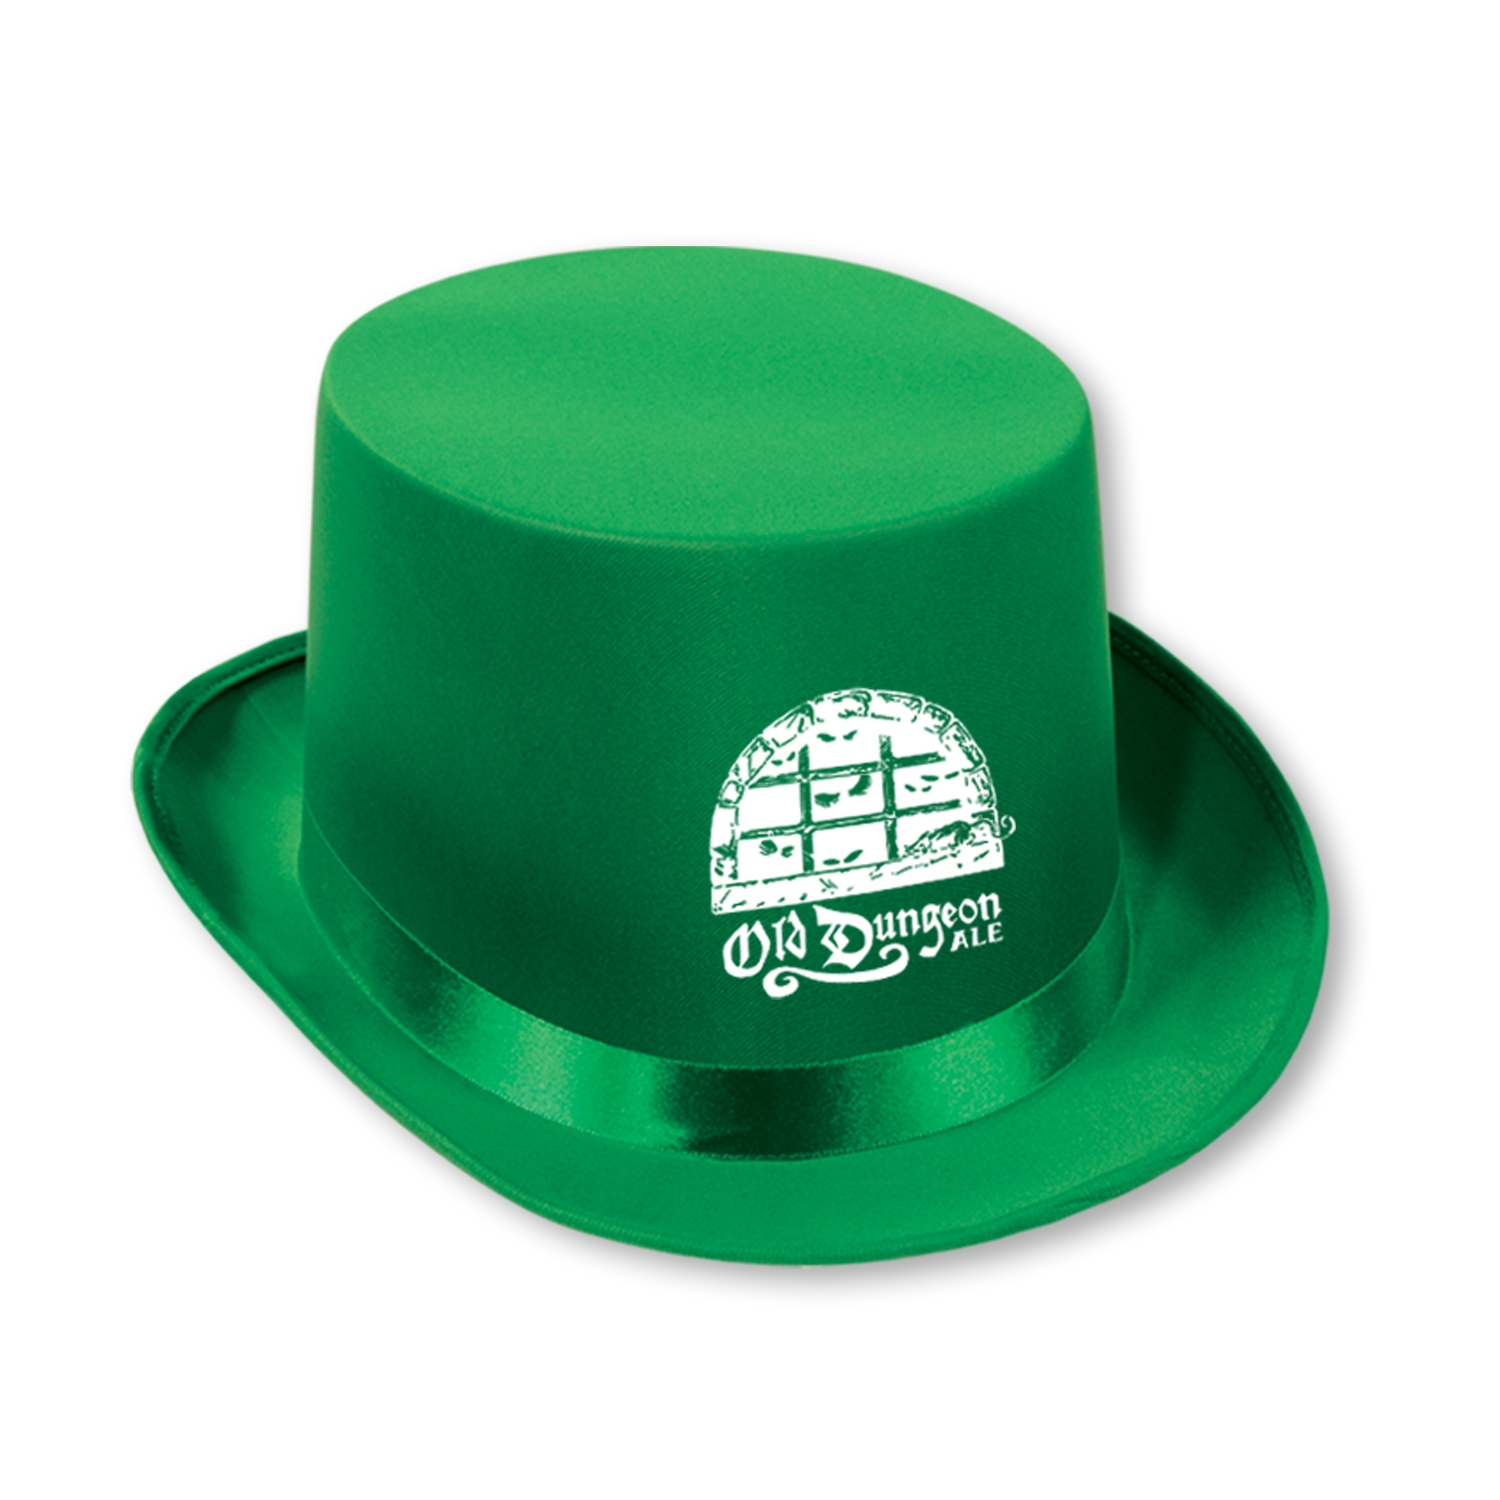 Custom Imprinted Satin Sleek Topper Custom Imprinted Satin Sleek Topper, custom, topper, hat, party favor, new years eve, st. patricks day, wholesale, inexpensive, bulk